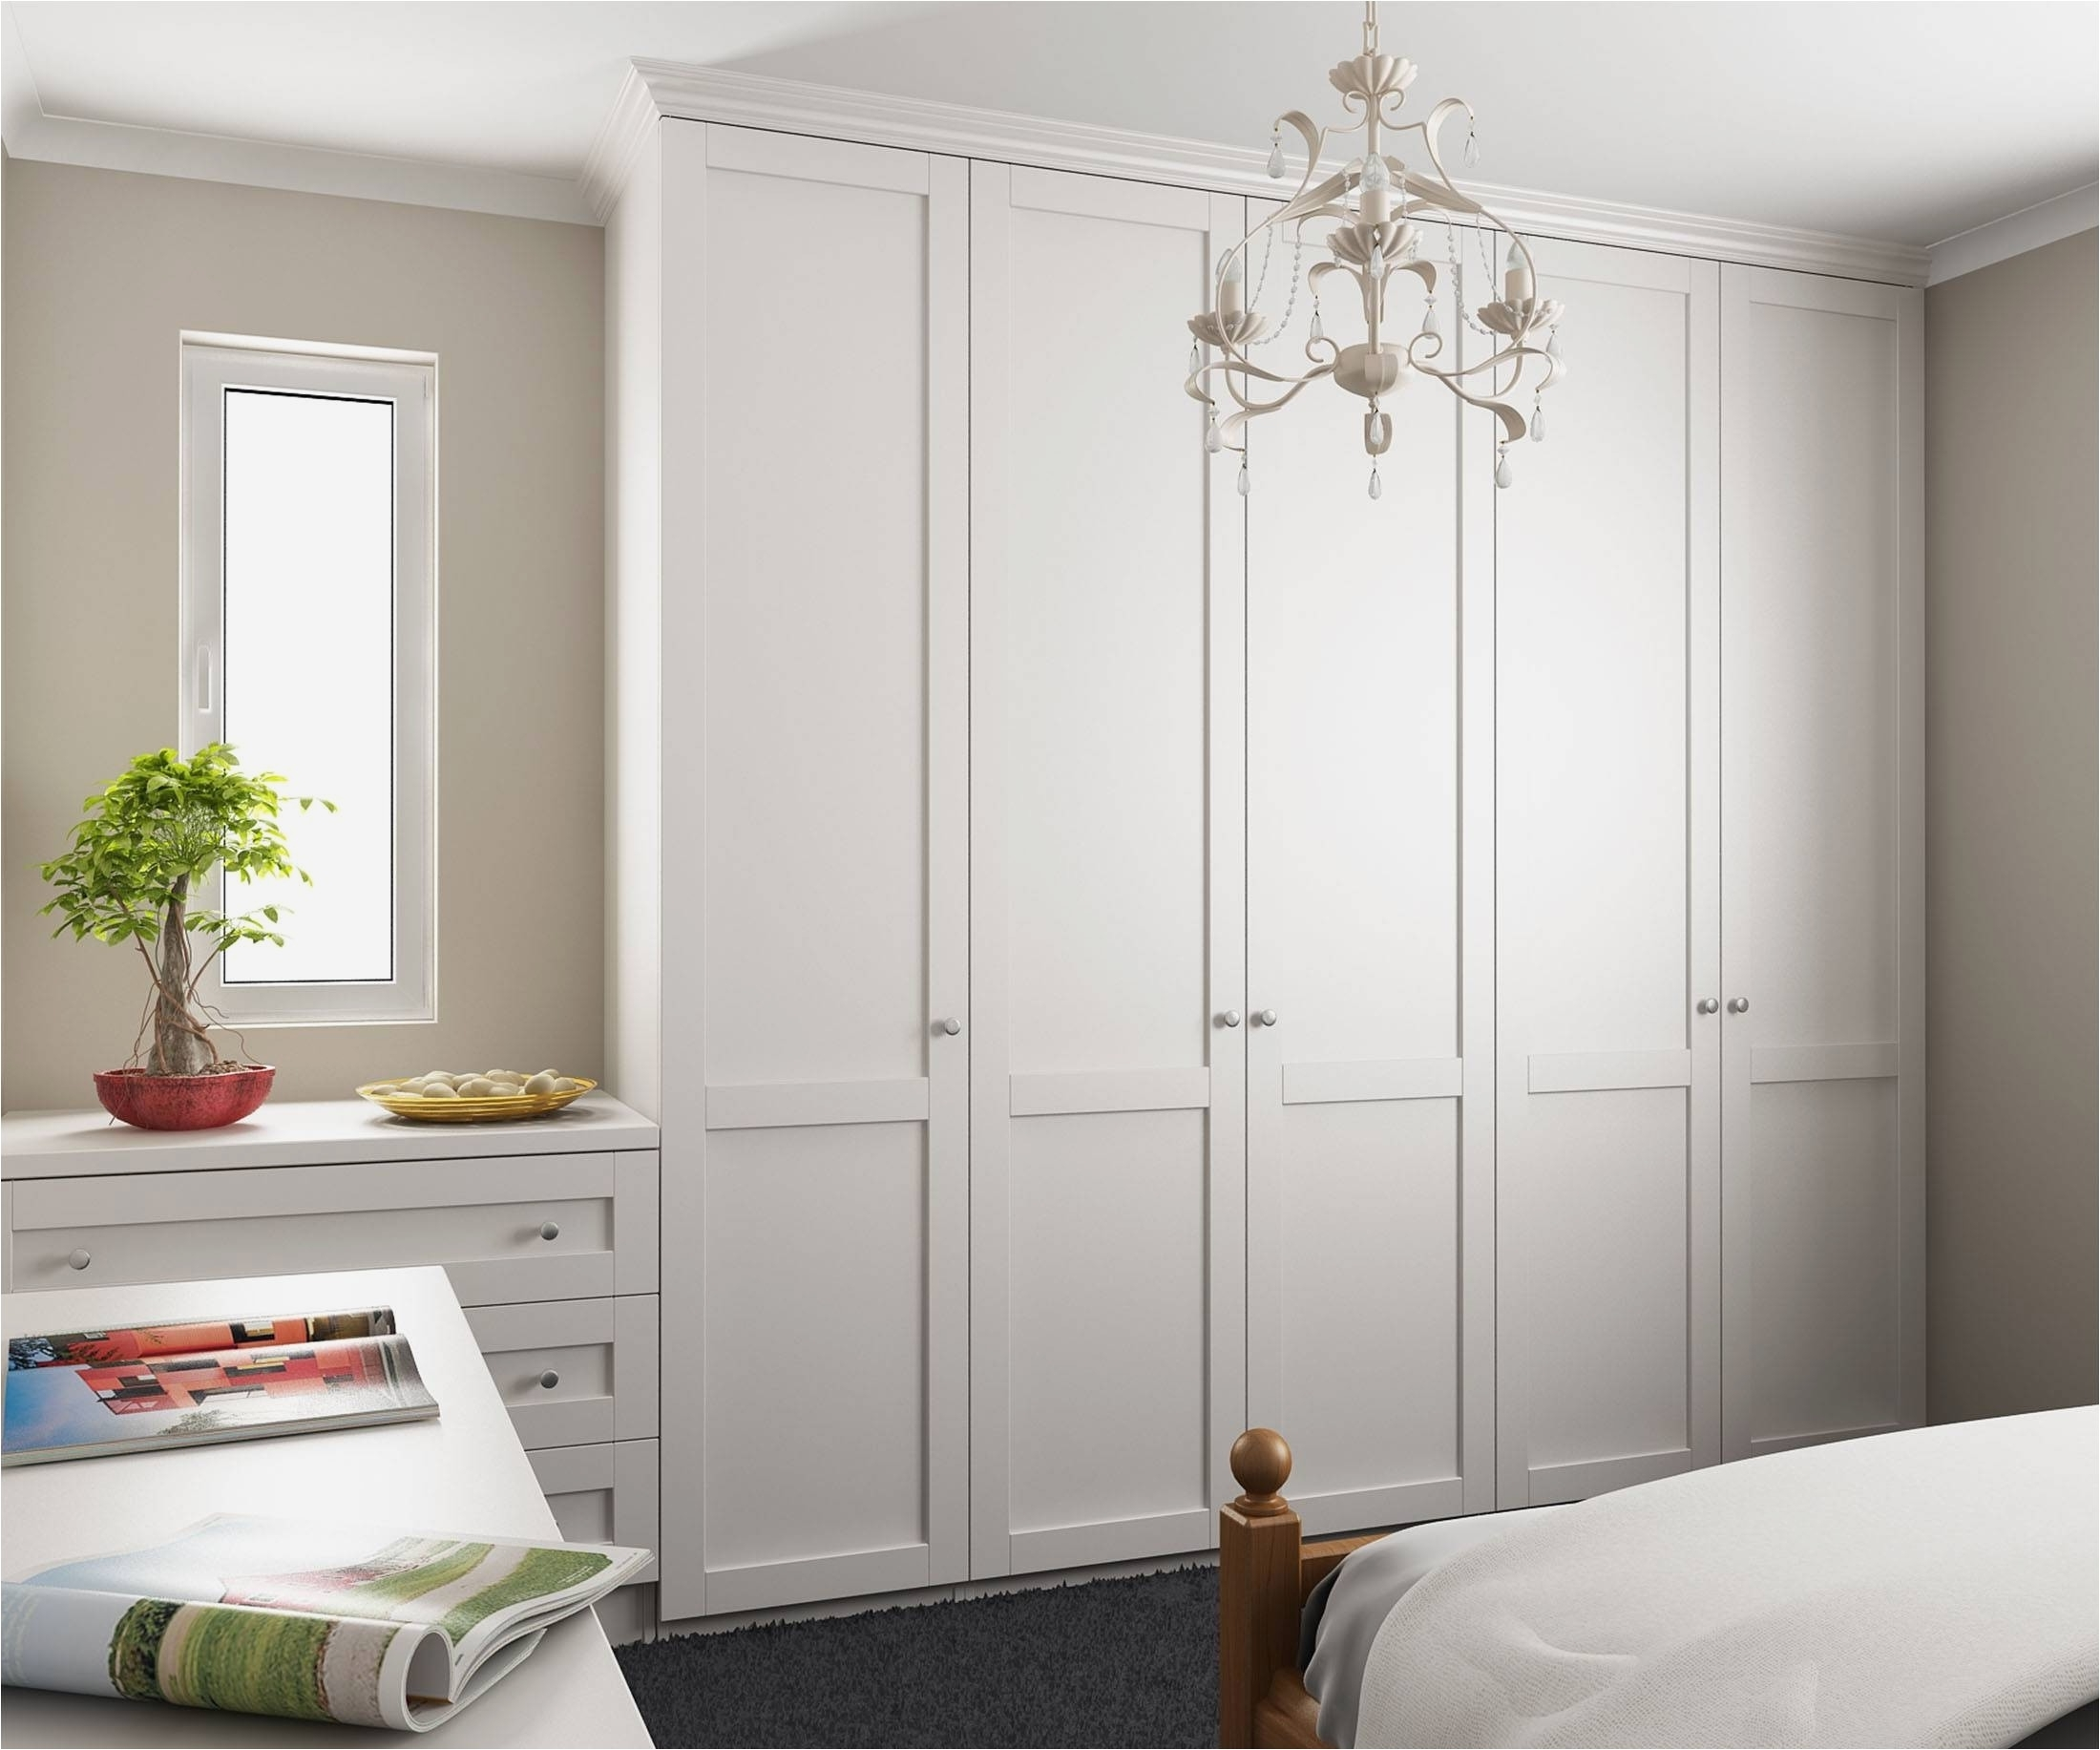 5 Door Wardrobes Bedroom Furniture Pertaining To Most Current Bedroom Furniture Ideas Inspirational 15 Best Ideas Of 5 Door (View 6 of 15)